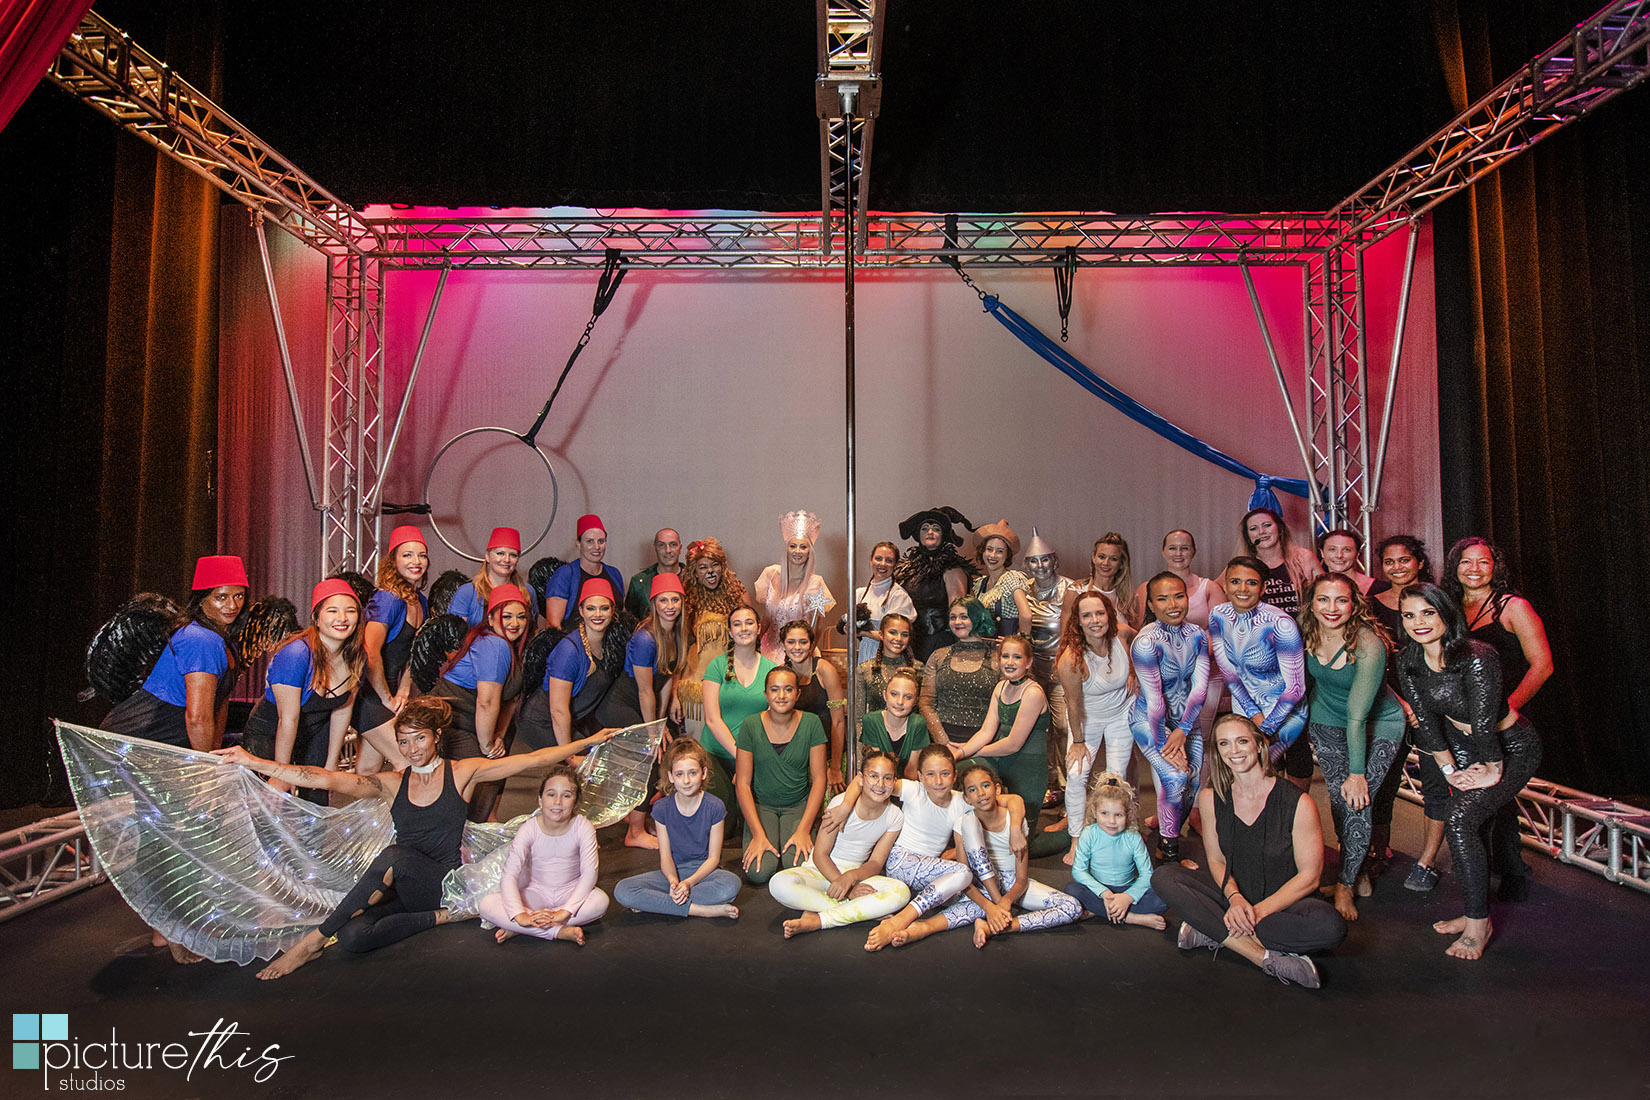 Picture This Studios and Heather Holt Photography captured the Quintessential Movement Performance of the Wizard of Oz at the Grand Cayman Harquail Theatre